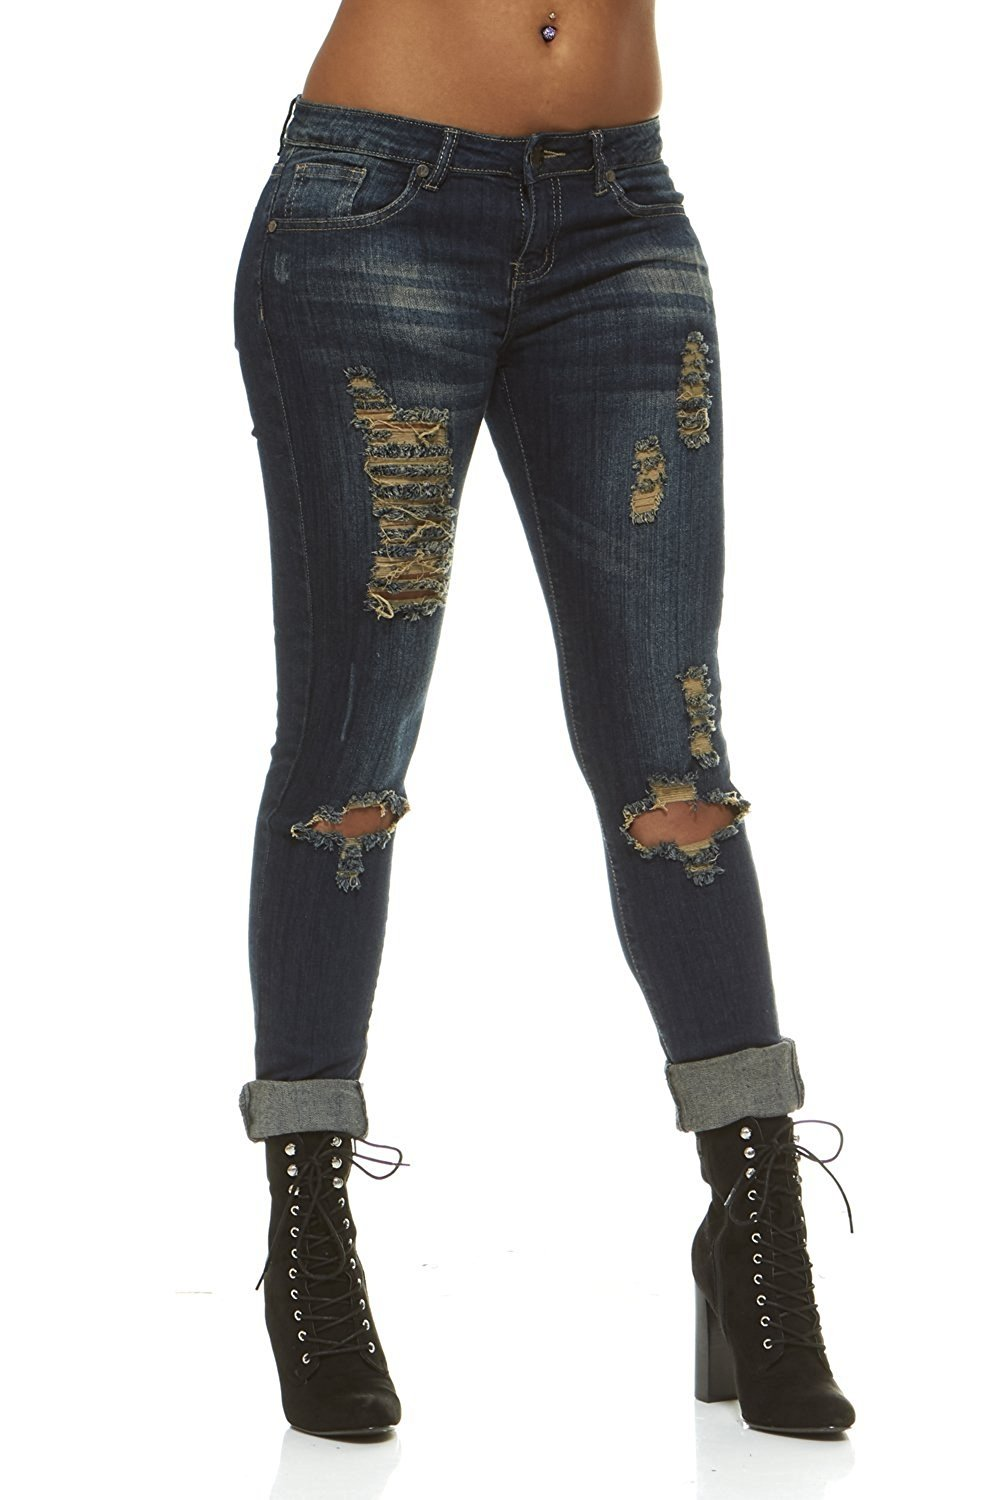 Cover Girl Women's Ripped Torn Distressed Repaired Patched Slim Fray Skinny, Blue, 7/8